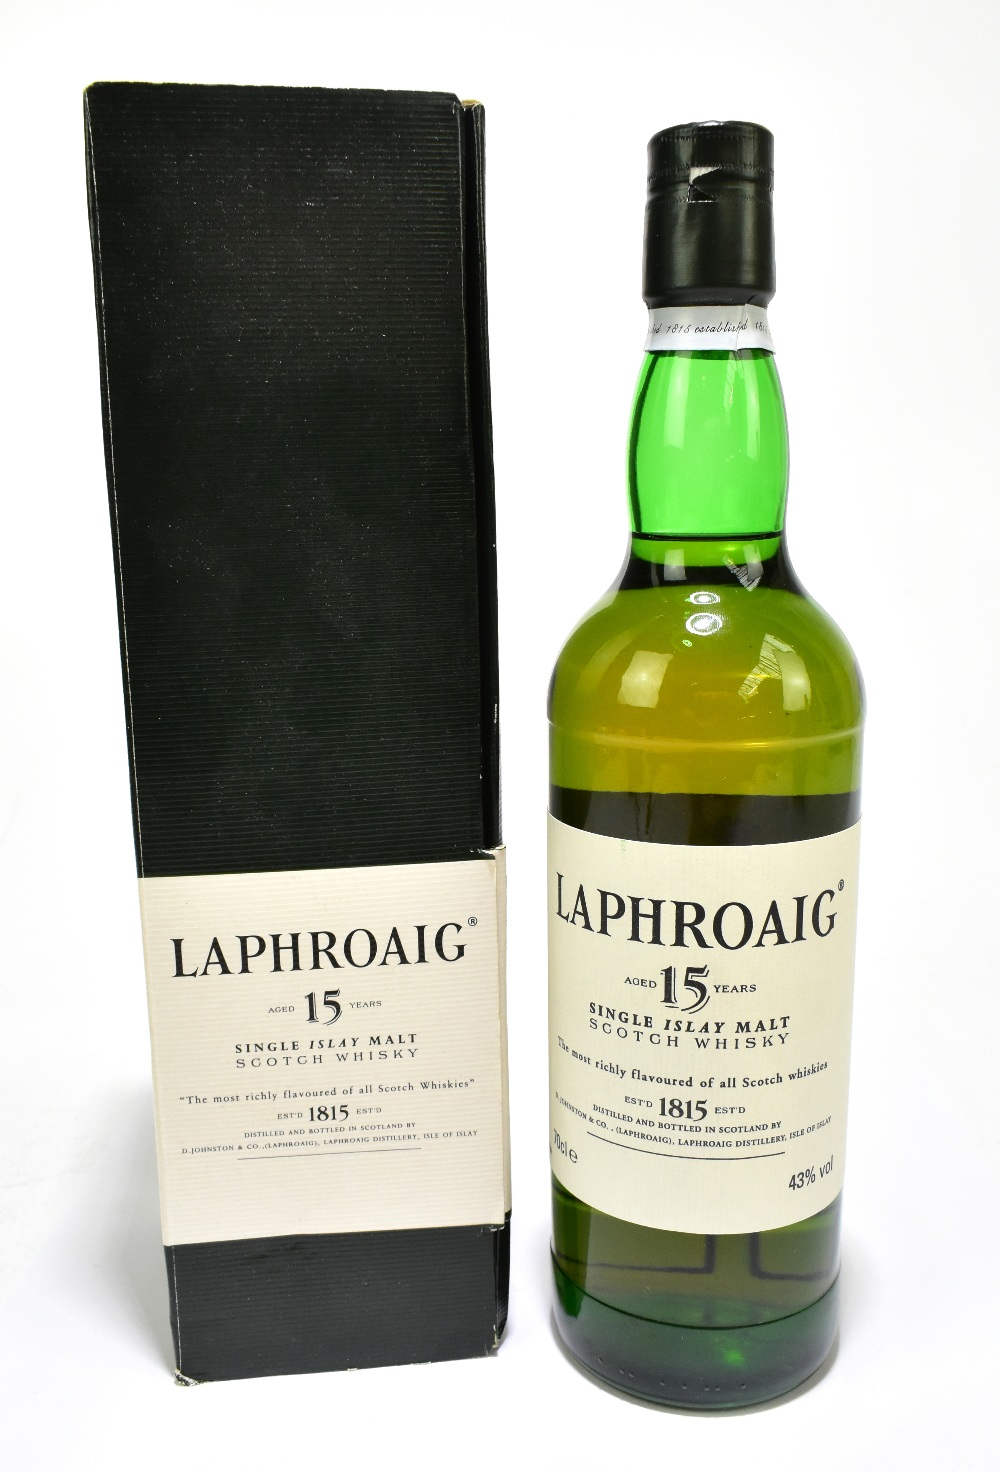 WHISKY; a single bottle of Laphroaig Aged 15 Years single Islay malt Scotch whisky, 70cl, 43%, in